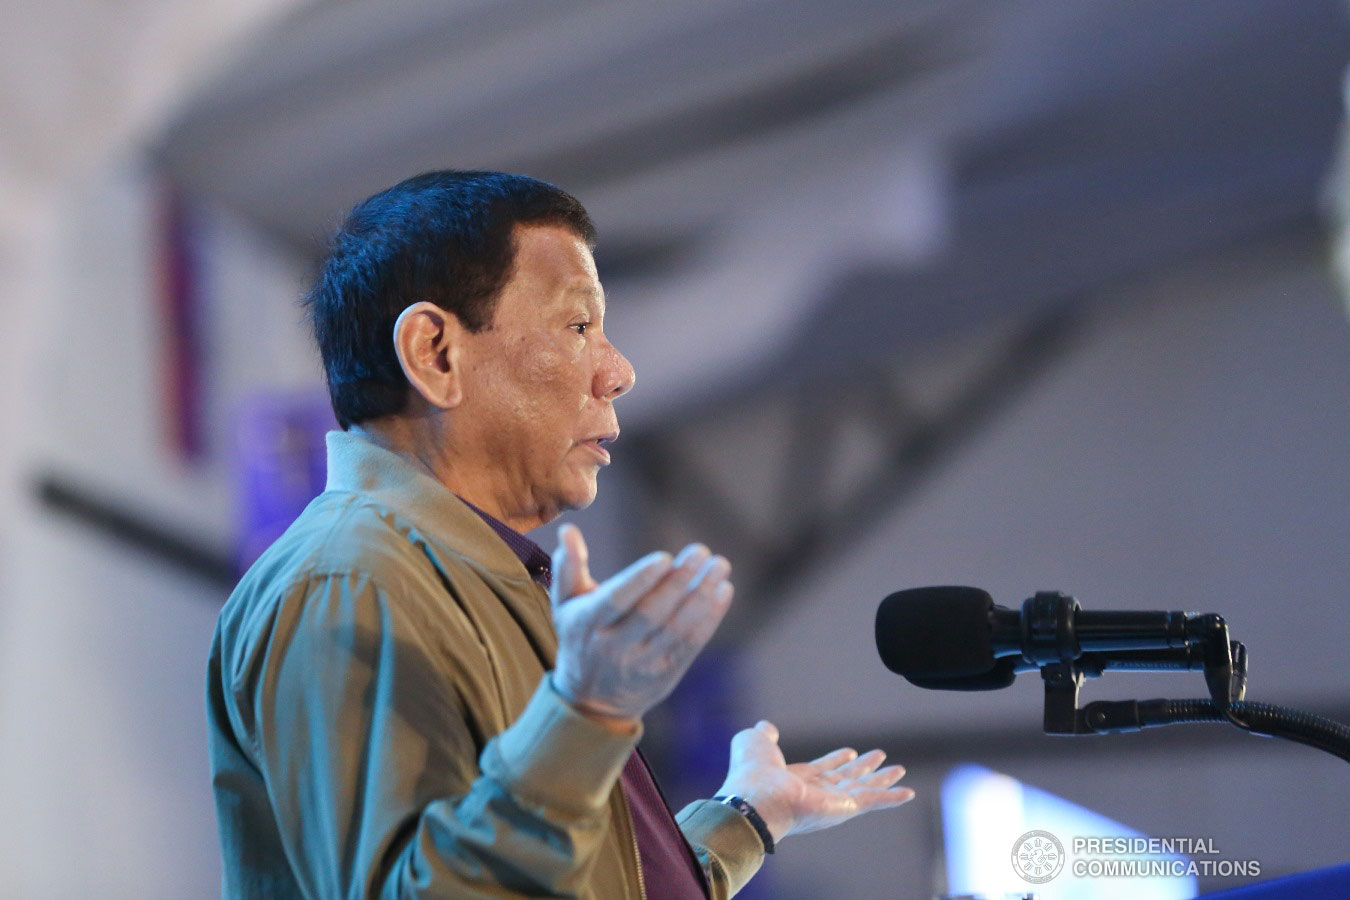 President Rodrigo Roa Duterte delivers his message during the birthday celebration of former Presidential Adviser on Political Affairs Atty. Francis Tolentino held at the Tagaytay International Convention Center in Tagaytay City, Cavite on January 3, 2019. ALFRED FRIAS/PRESIDENTIAL PHOTO